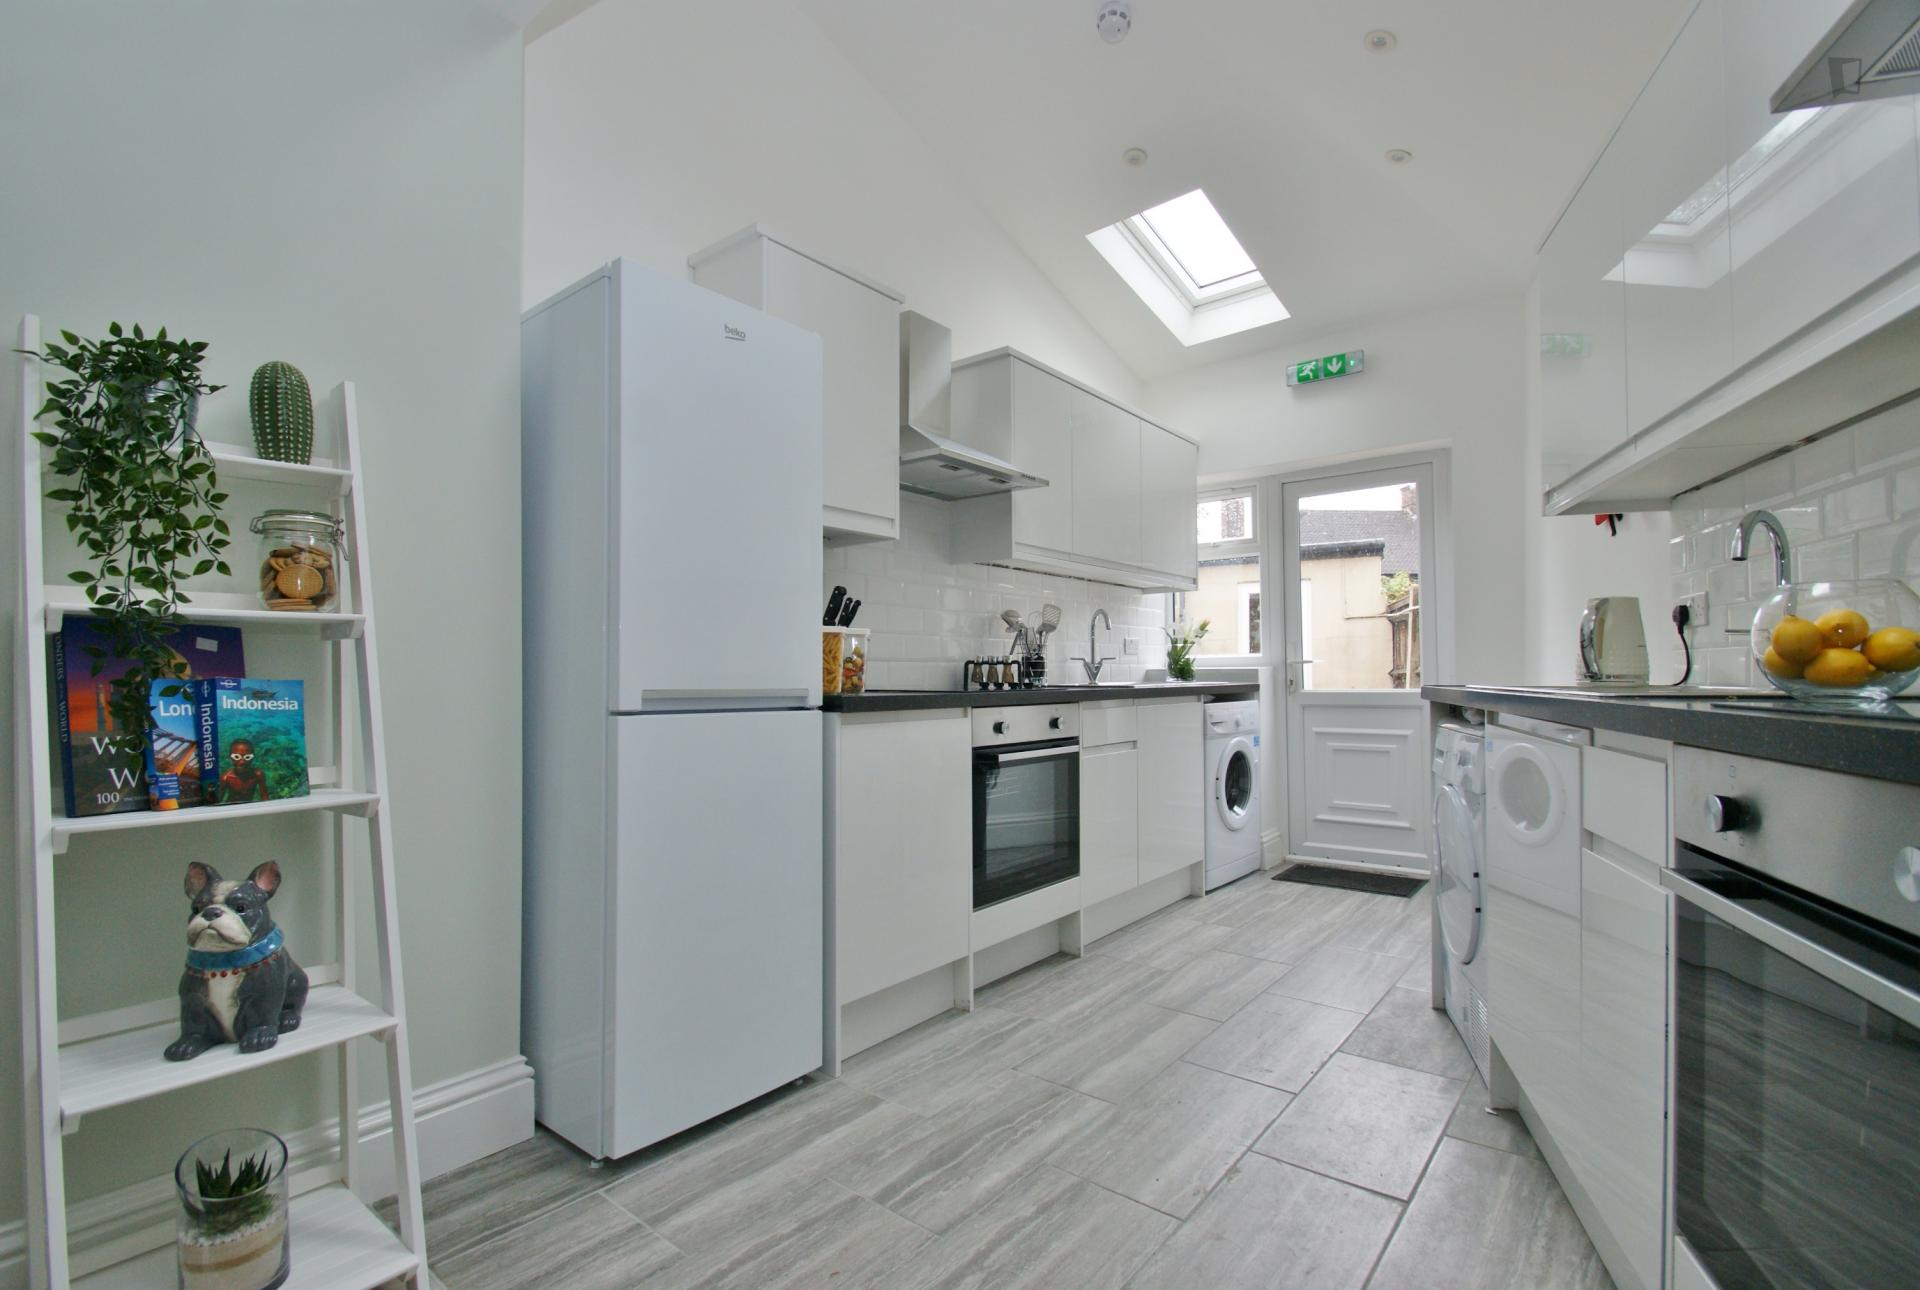 Cane Road - Double suite bedroom in London